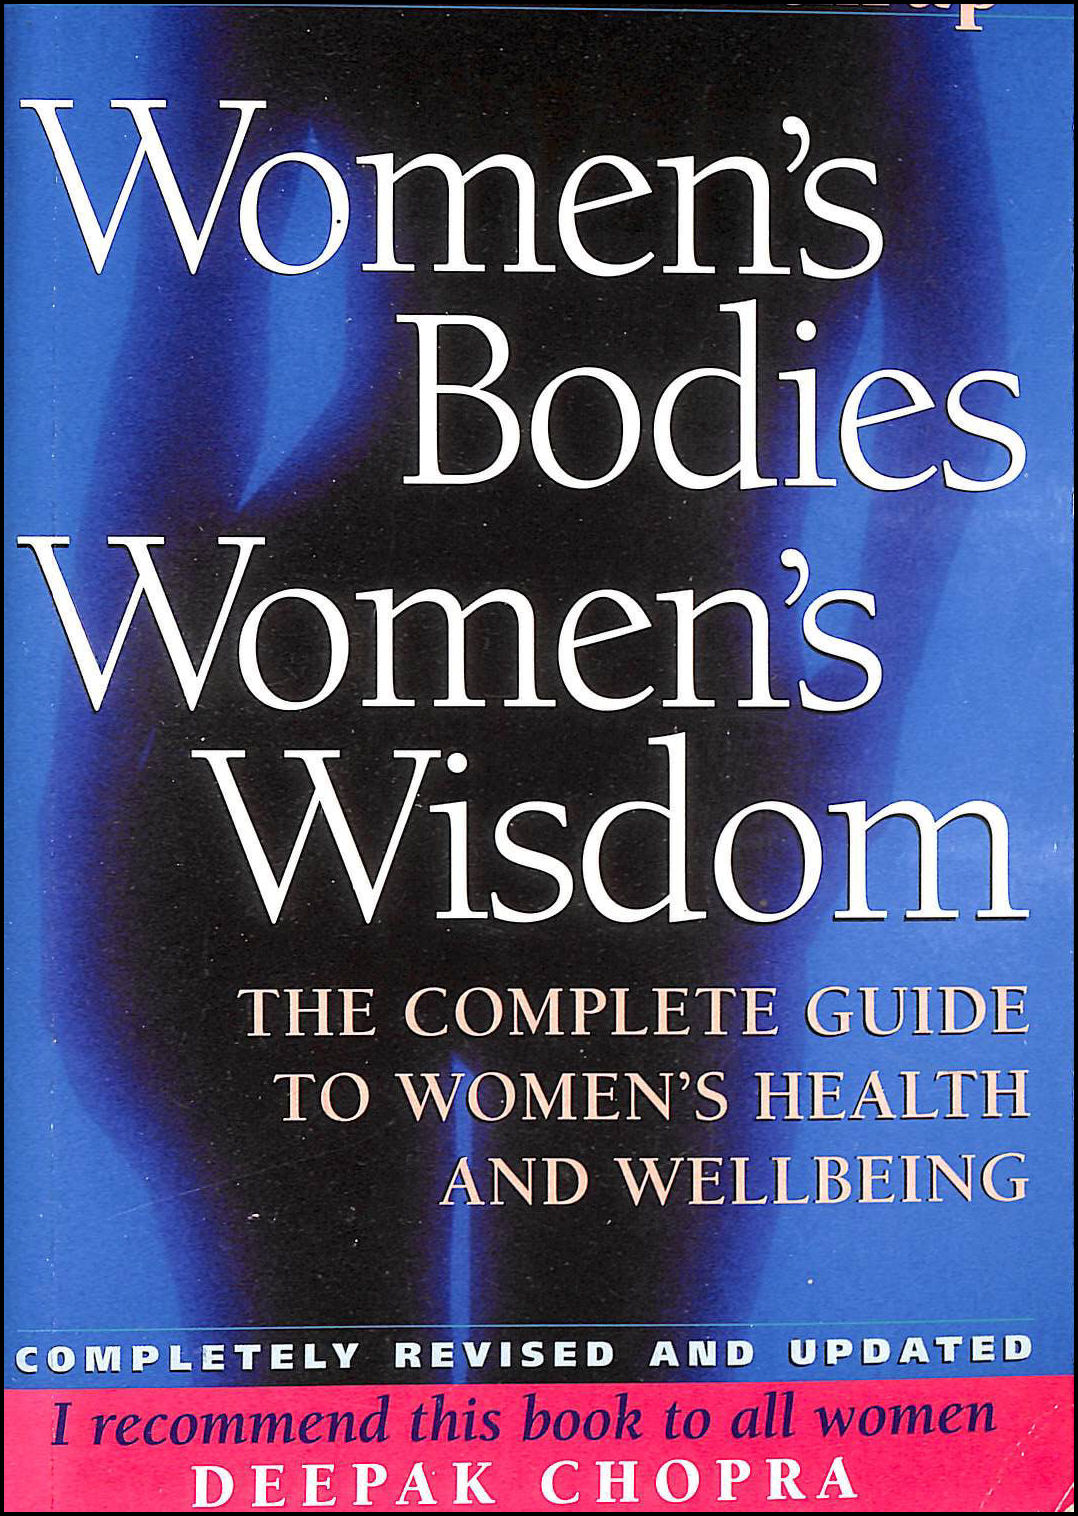 Image for Women's Bodies, Women's Wisdom: The Complete Guide To Women's Health And Wellbeing